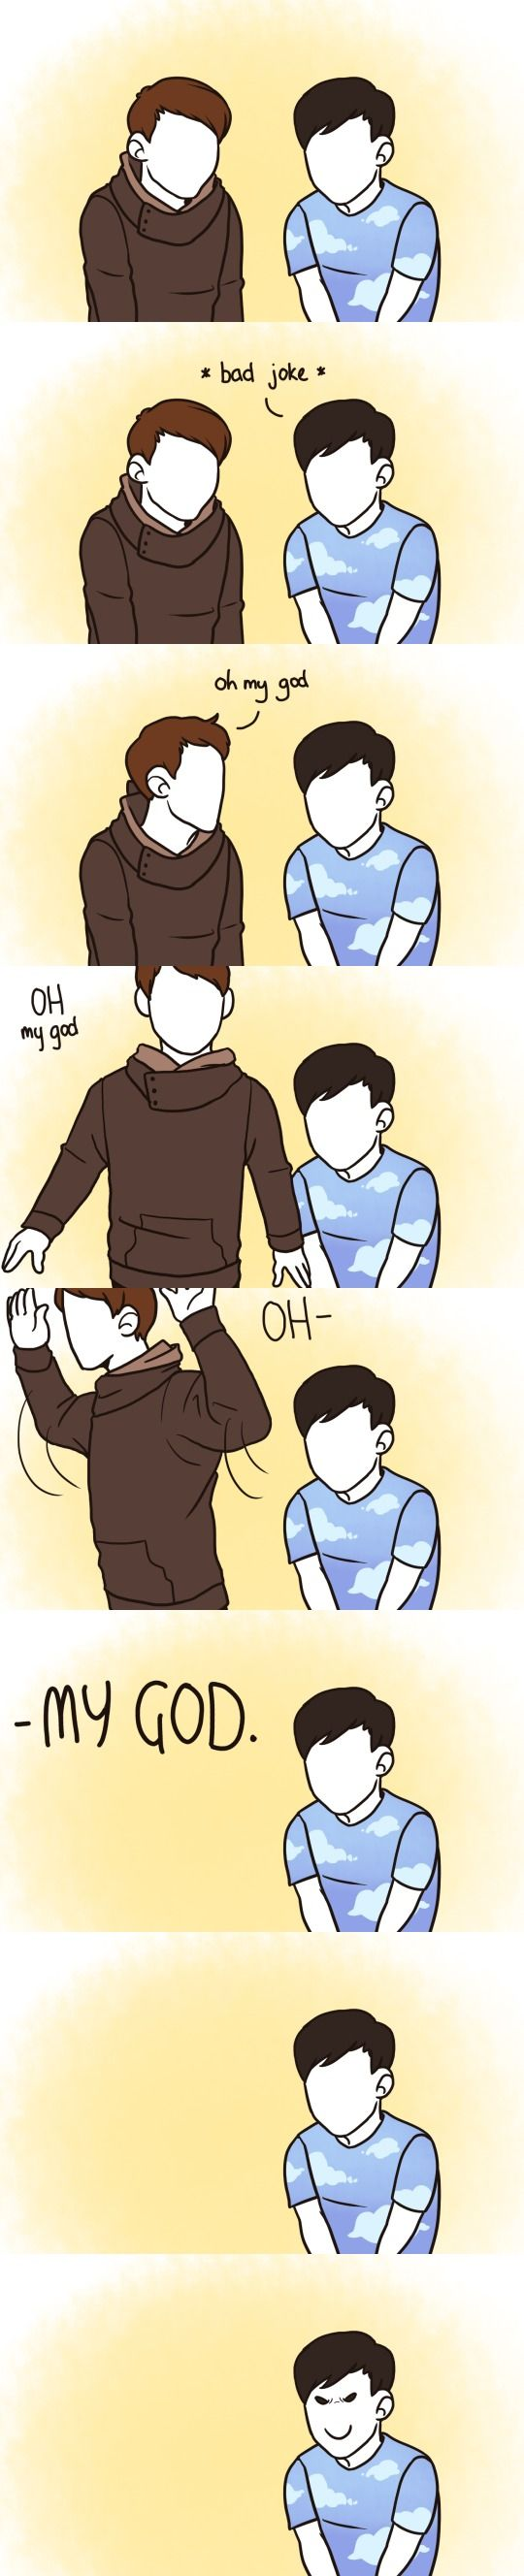 Danisnotonfire and AmazingPhil #comic